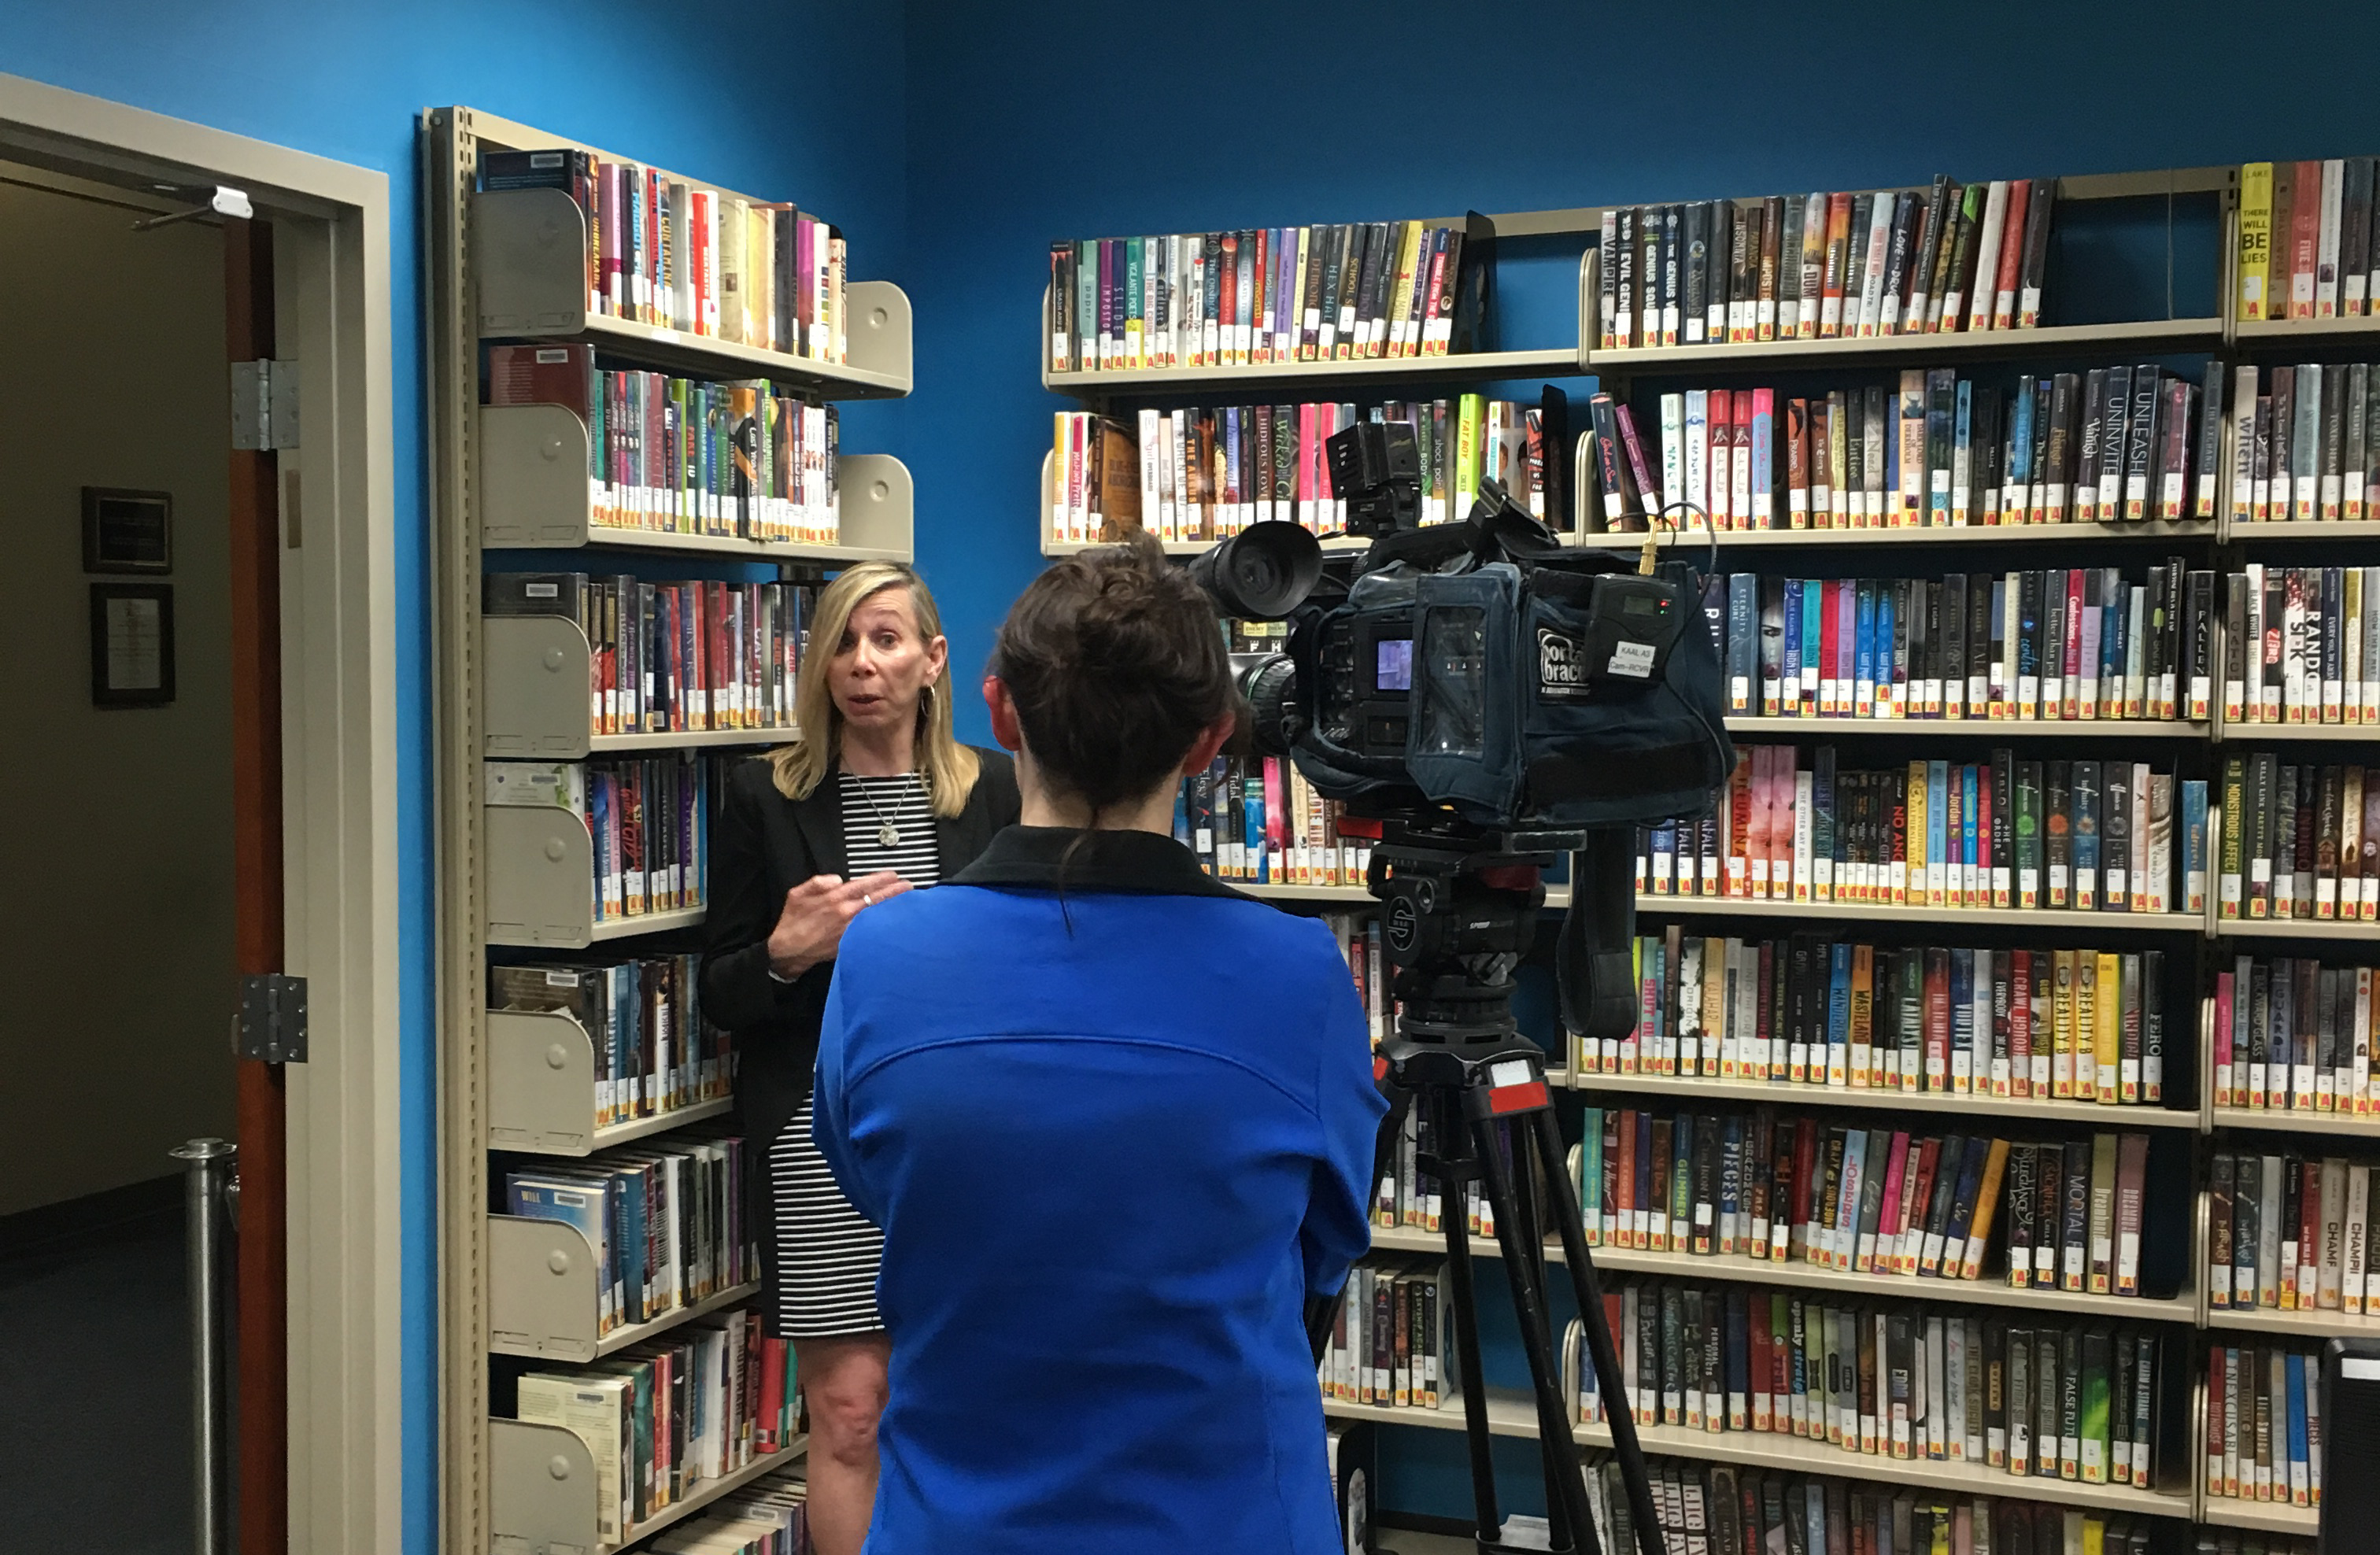 ellen krug being interviewed at the Rochester Public Library